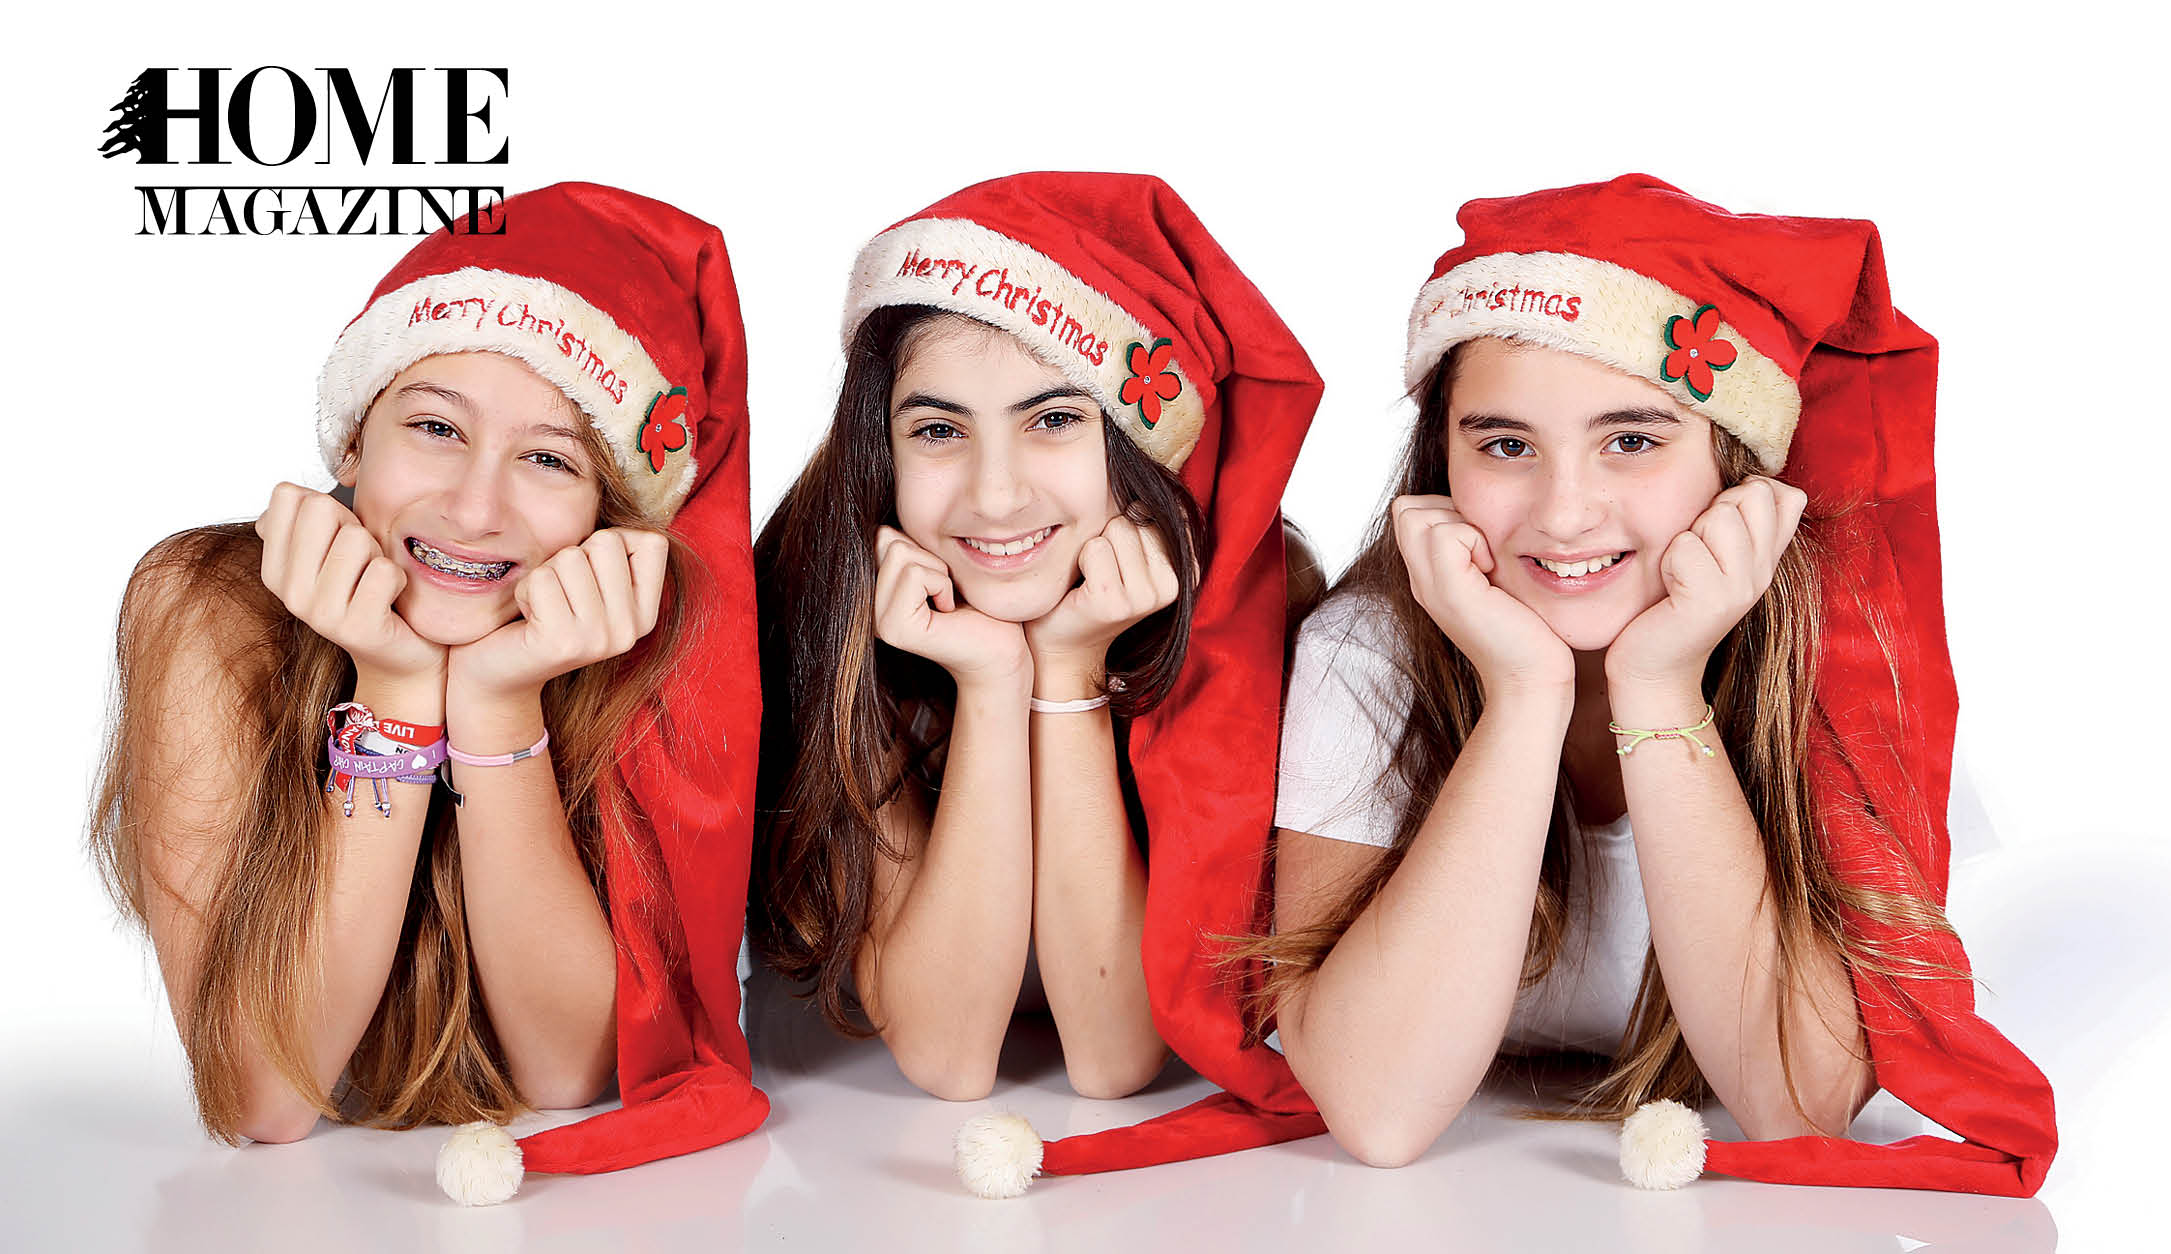 The Spoiling Epidemic of Christmas: How to Avoid Spoiling Kids at Christmas